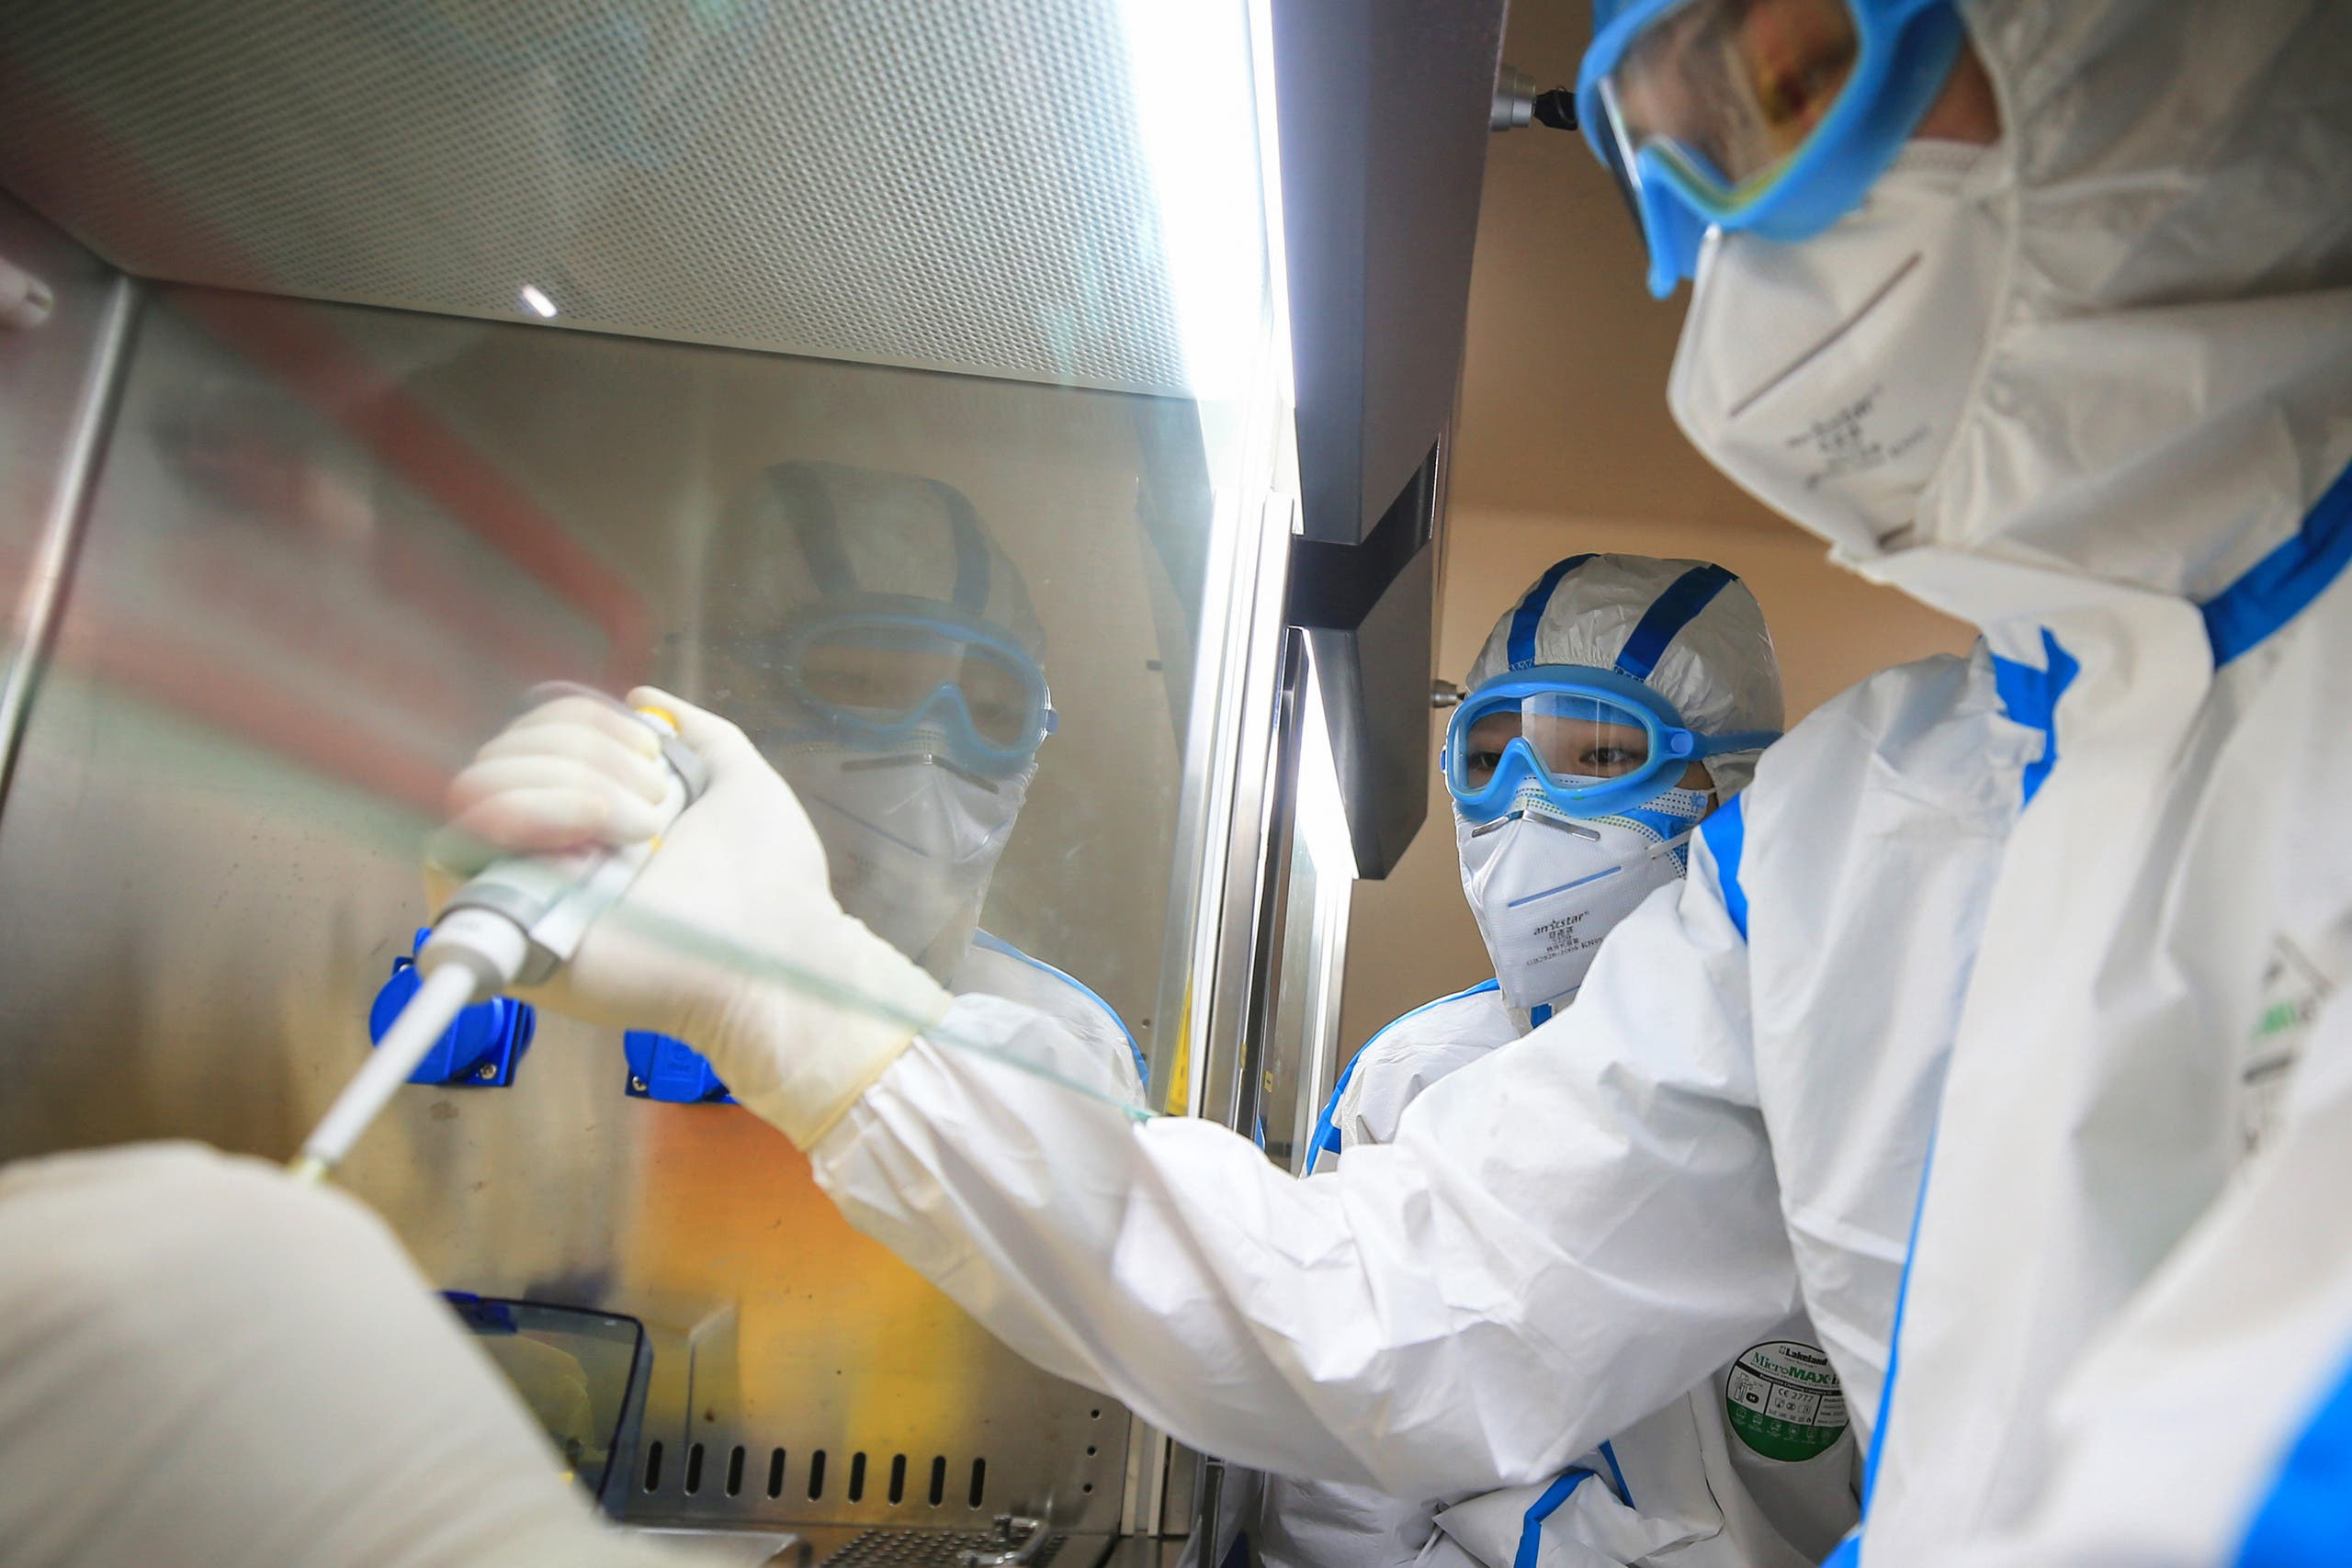 Laboratory technicians testing samples of coronavirus at a laboratory in Hengyang in China's central Henan province on February 18, 2020. (File photo: AFP)